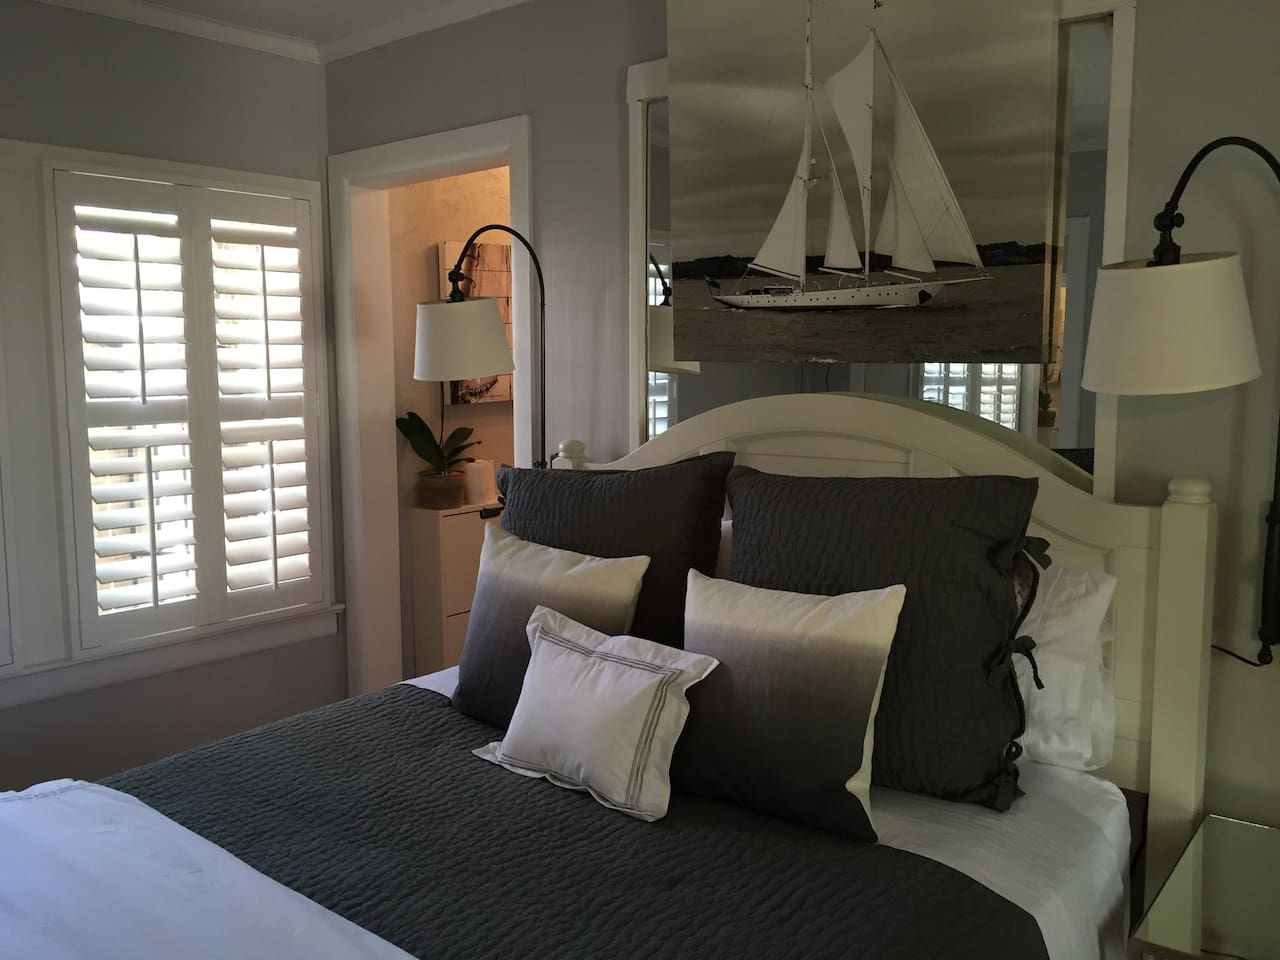 top 20 west palm beach vacation rentals vacation homes condo rentals airbnb west palm beach florida united states west palm beach rentals west